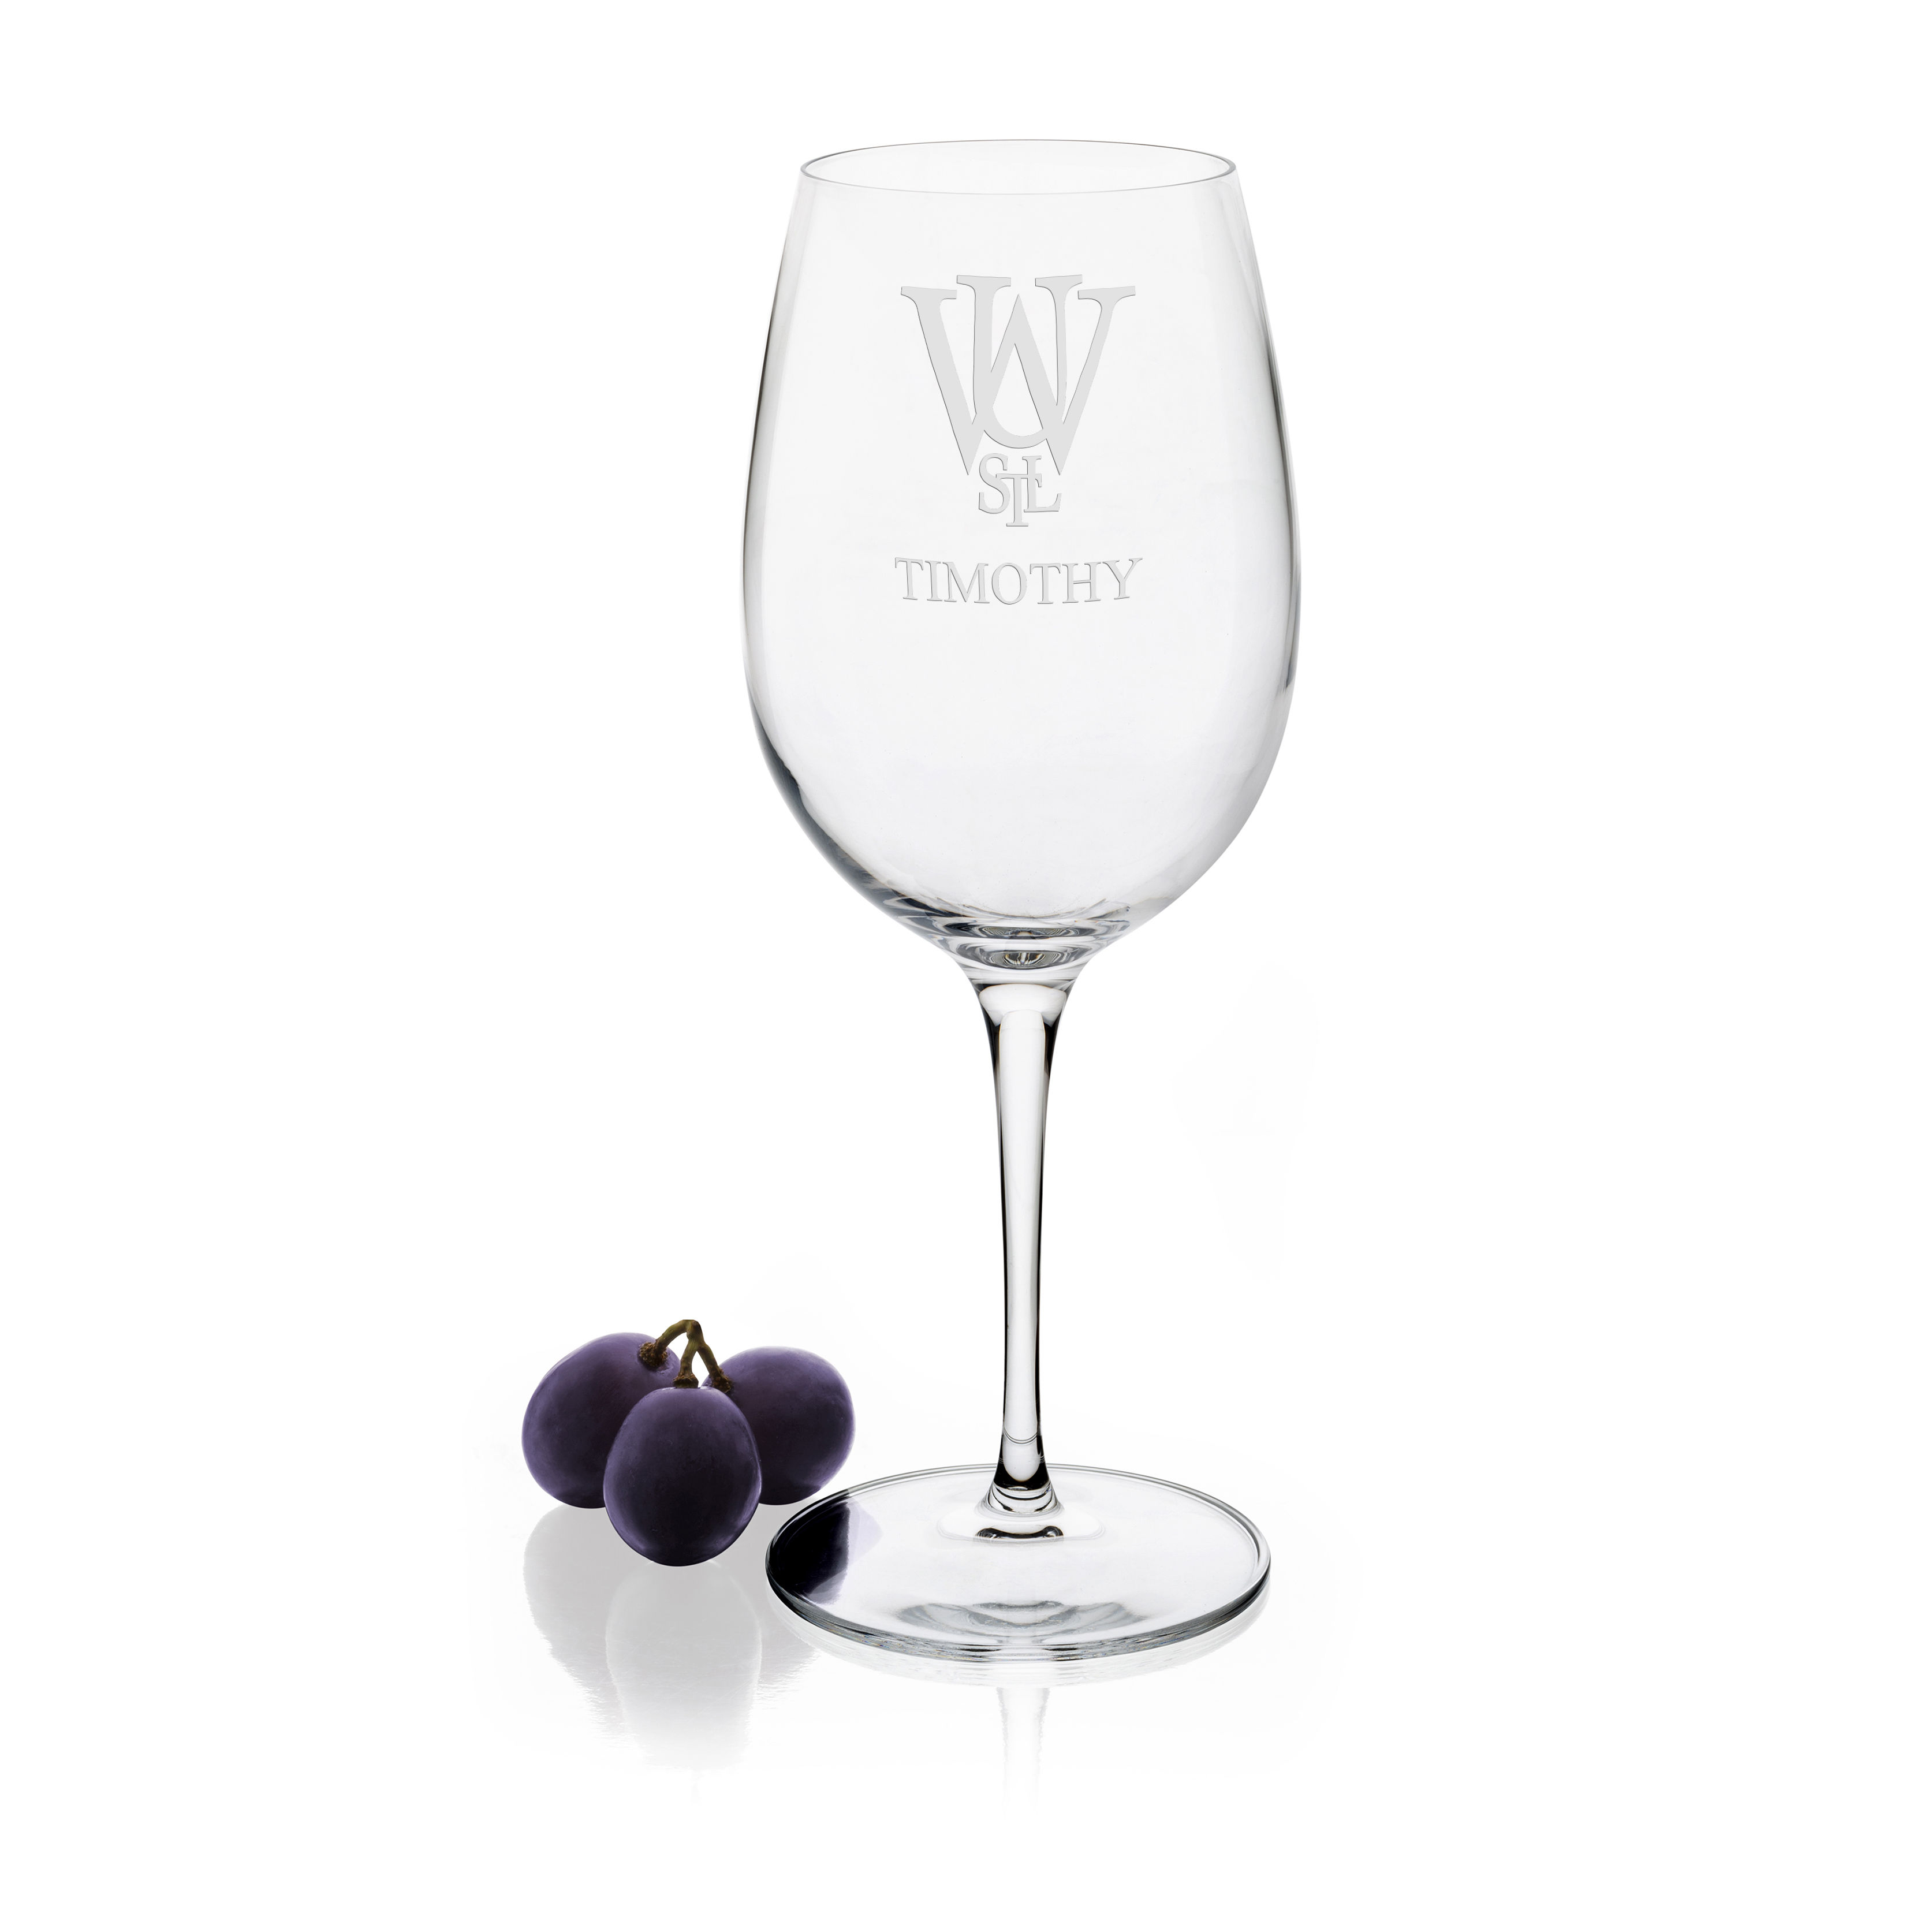 WUSTL Red Wine Glasses - Set of 2 - Image 1